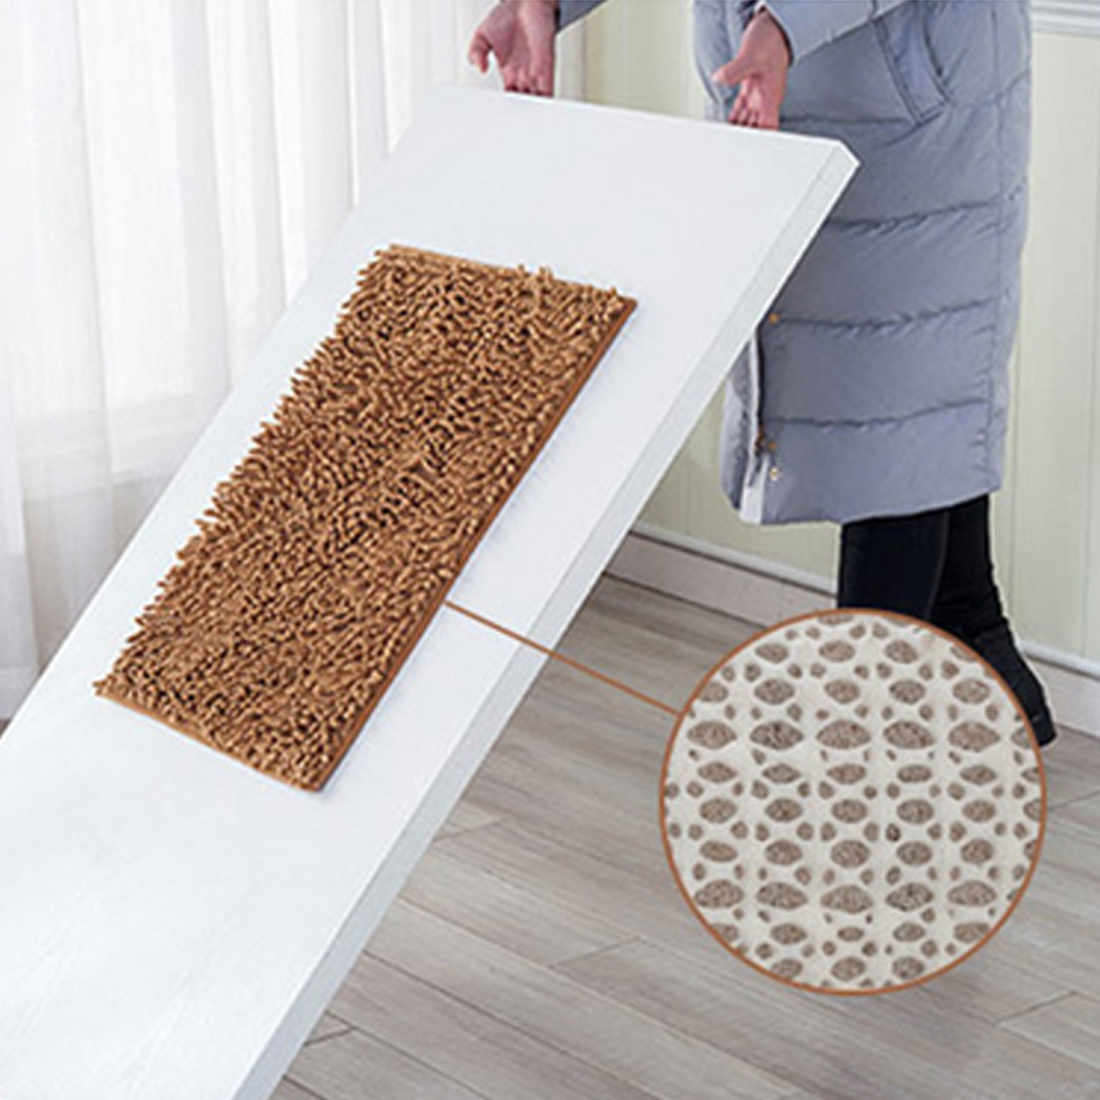 com shop mat lowes memory accessories bath foam rugs bathroom border x polyester toilet shower roth in at pl allen romanesque mats hardware